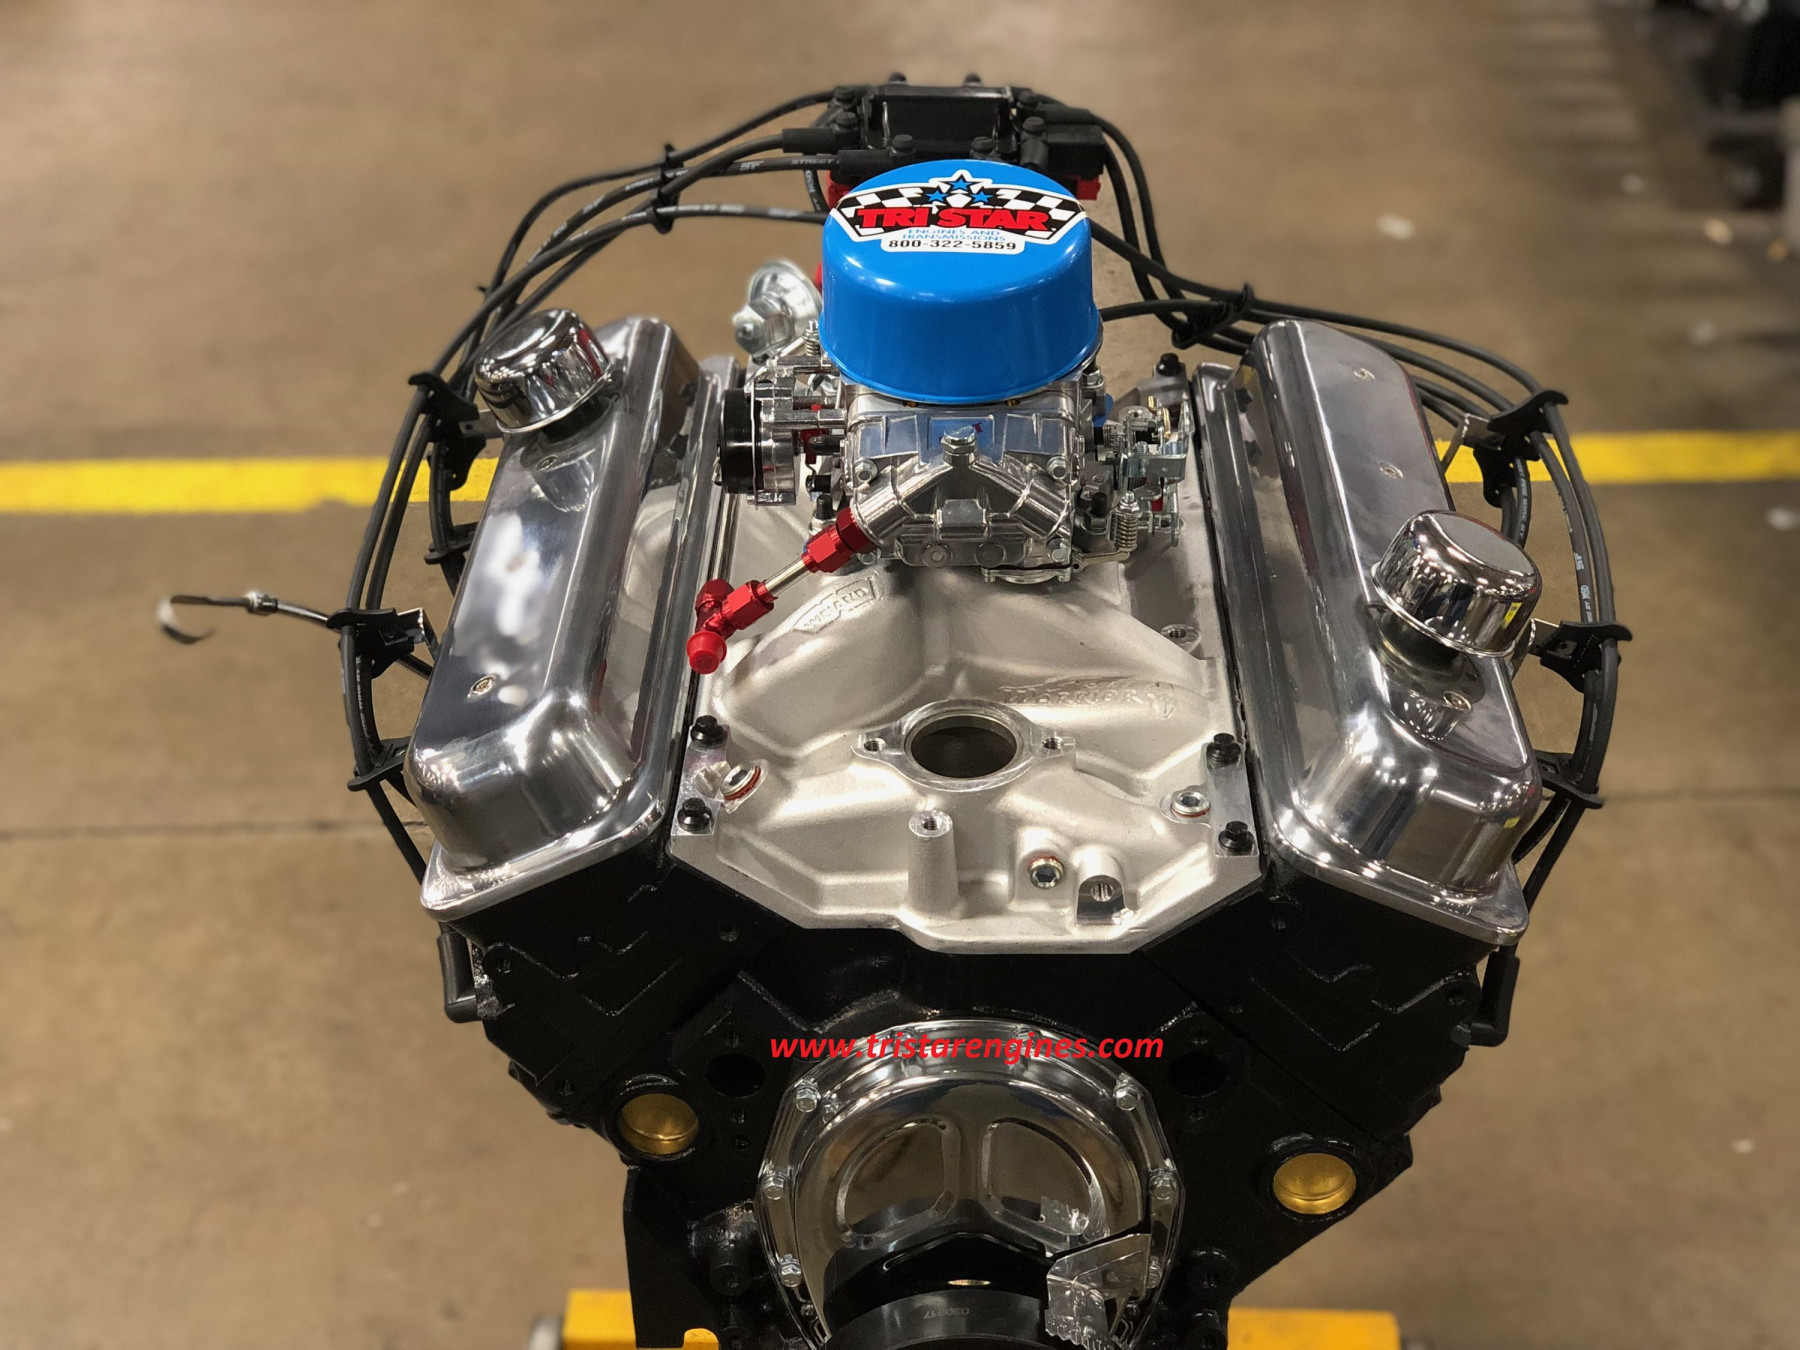 Warrior Core Engine Xp: 383 Stroker Crate Engine For Sale